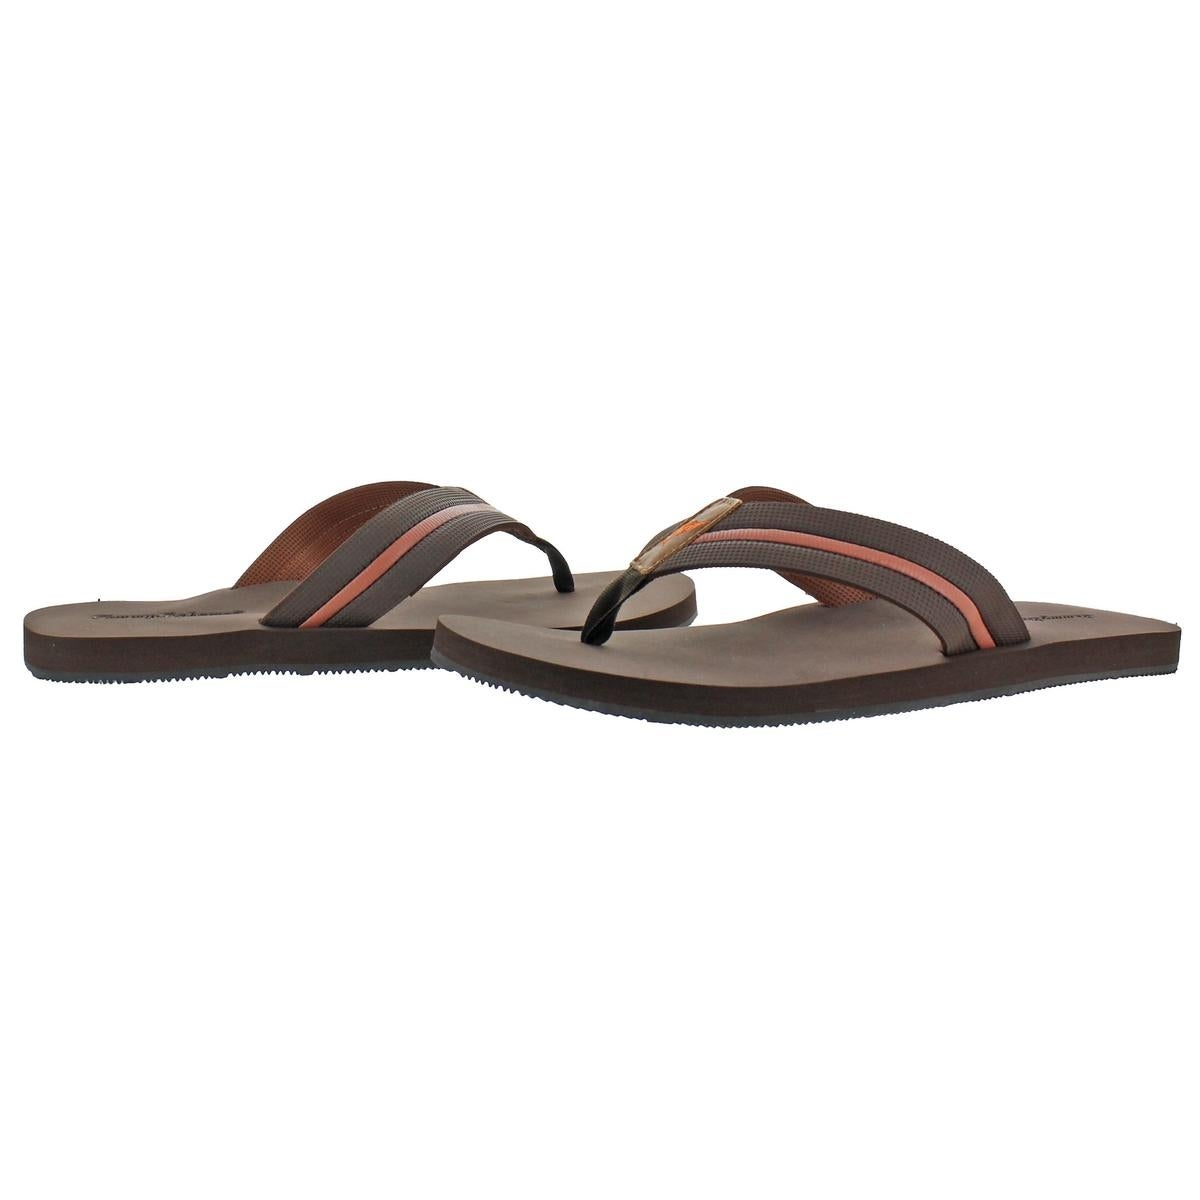 1dcd6e7113e6 Shop Tommy Bahama Mens Taheeti Flip-Flops Summer Beach - Free Shipping On  Orders Over  45 - Overstock - 22985007